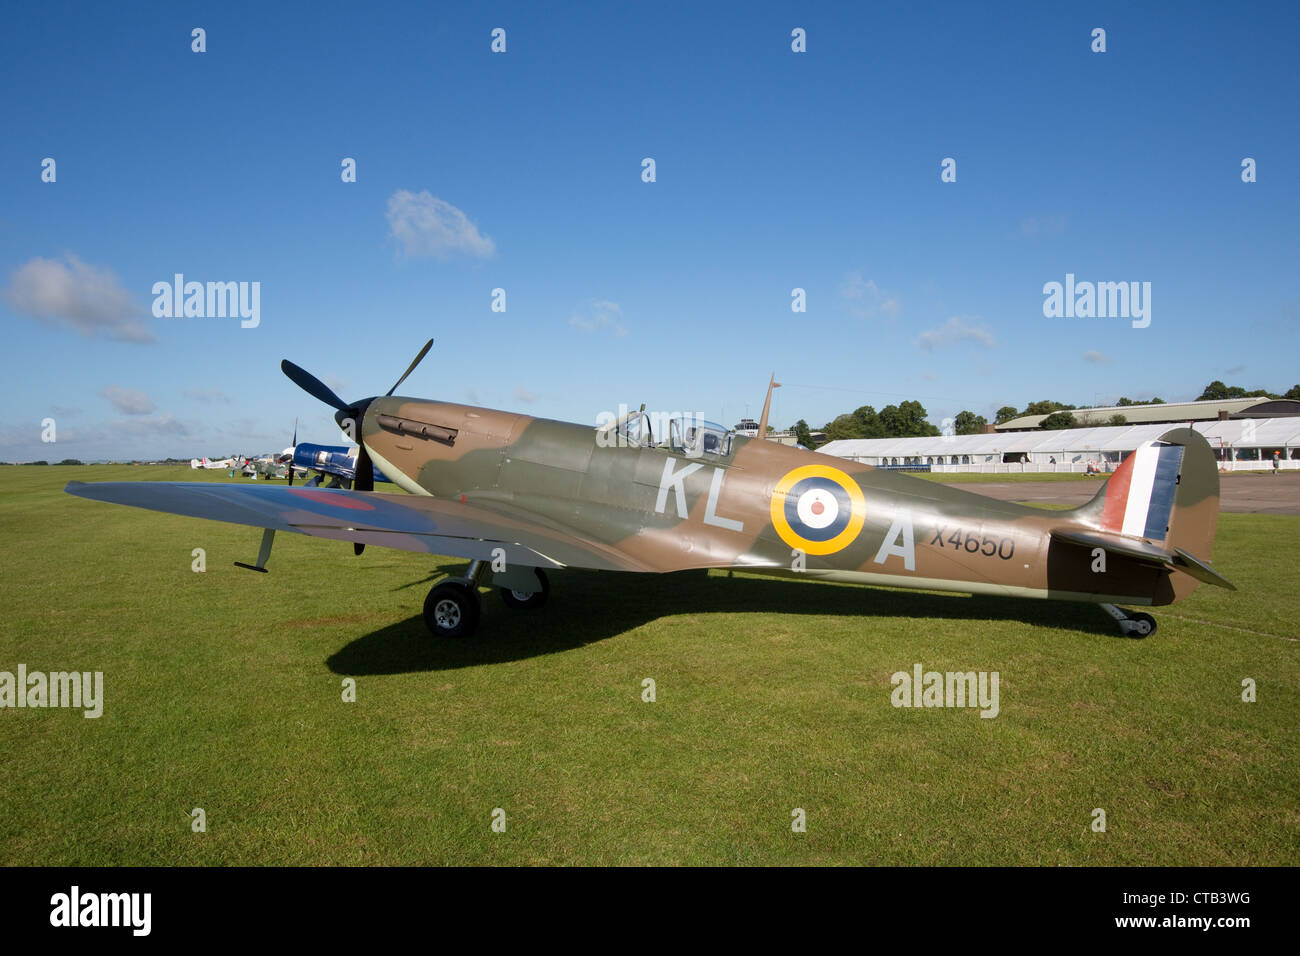 Mk1 Spitfire at the Imperial War Museums Duxford,Cambridgeshire. - Stock Image